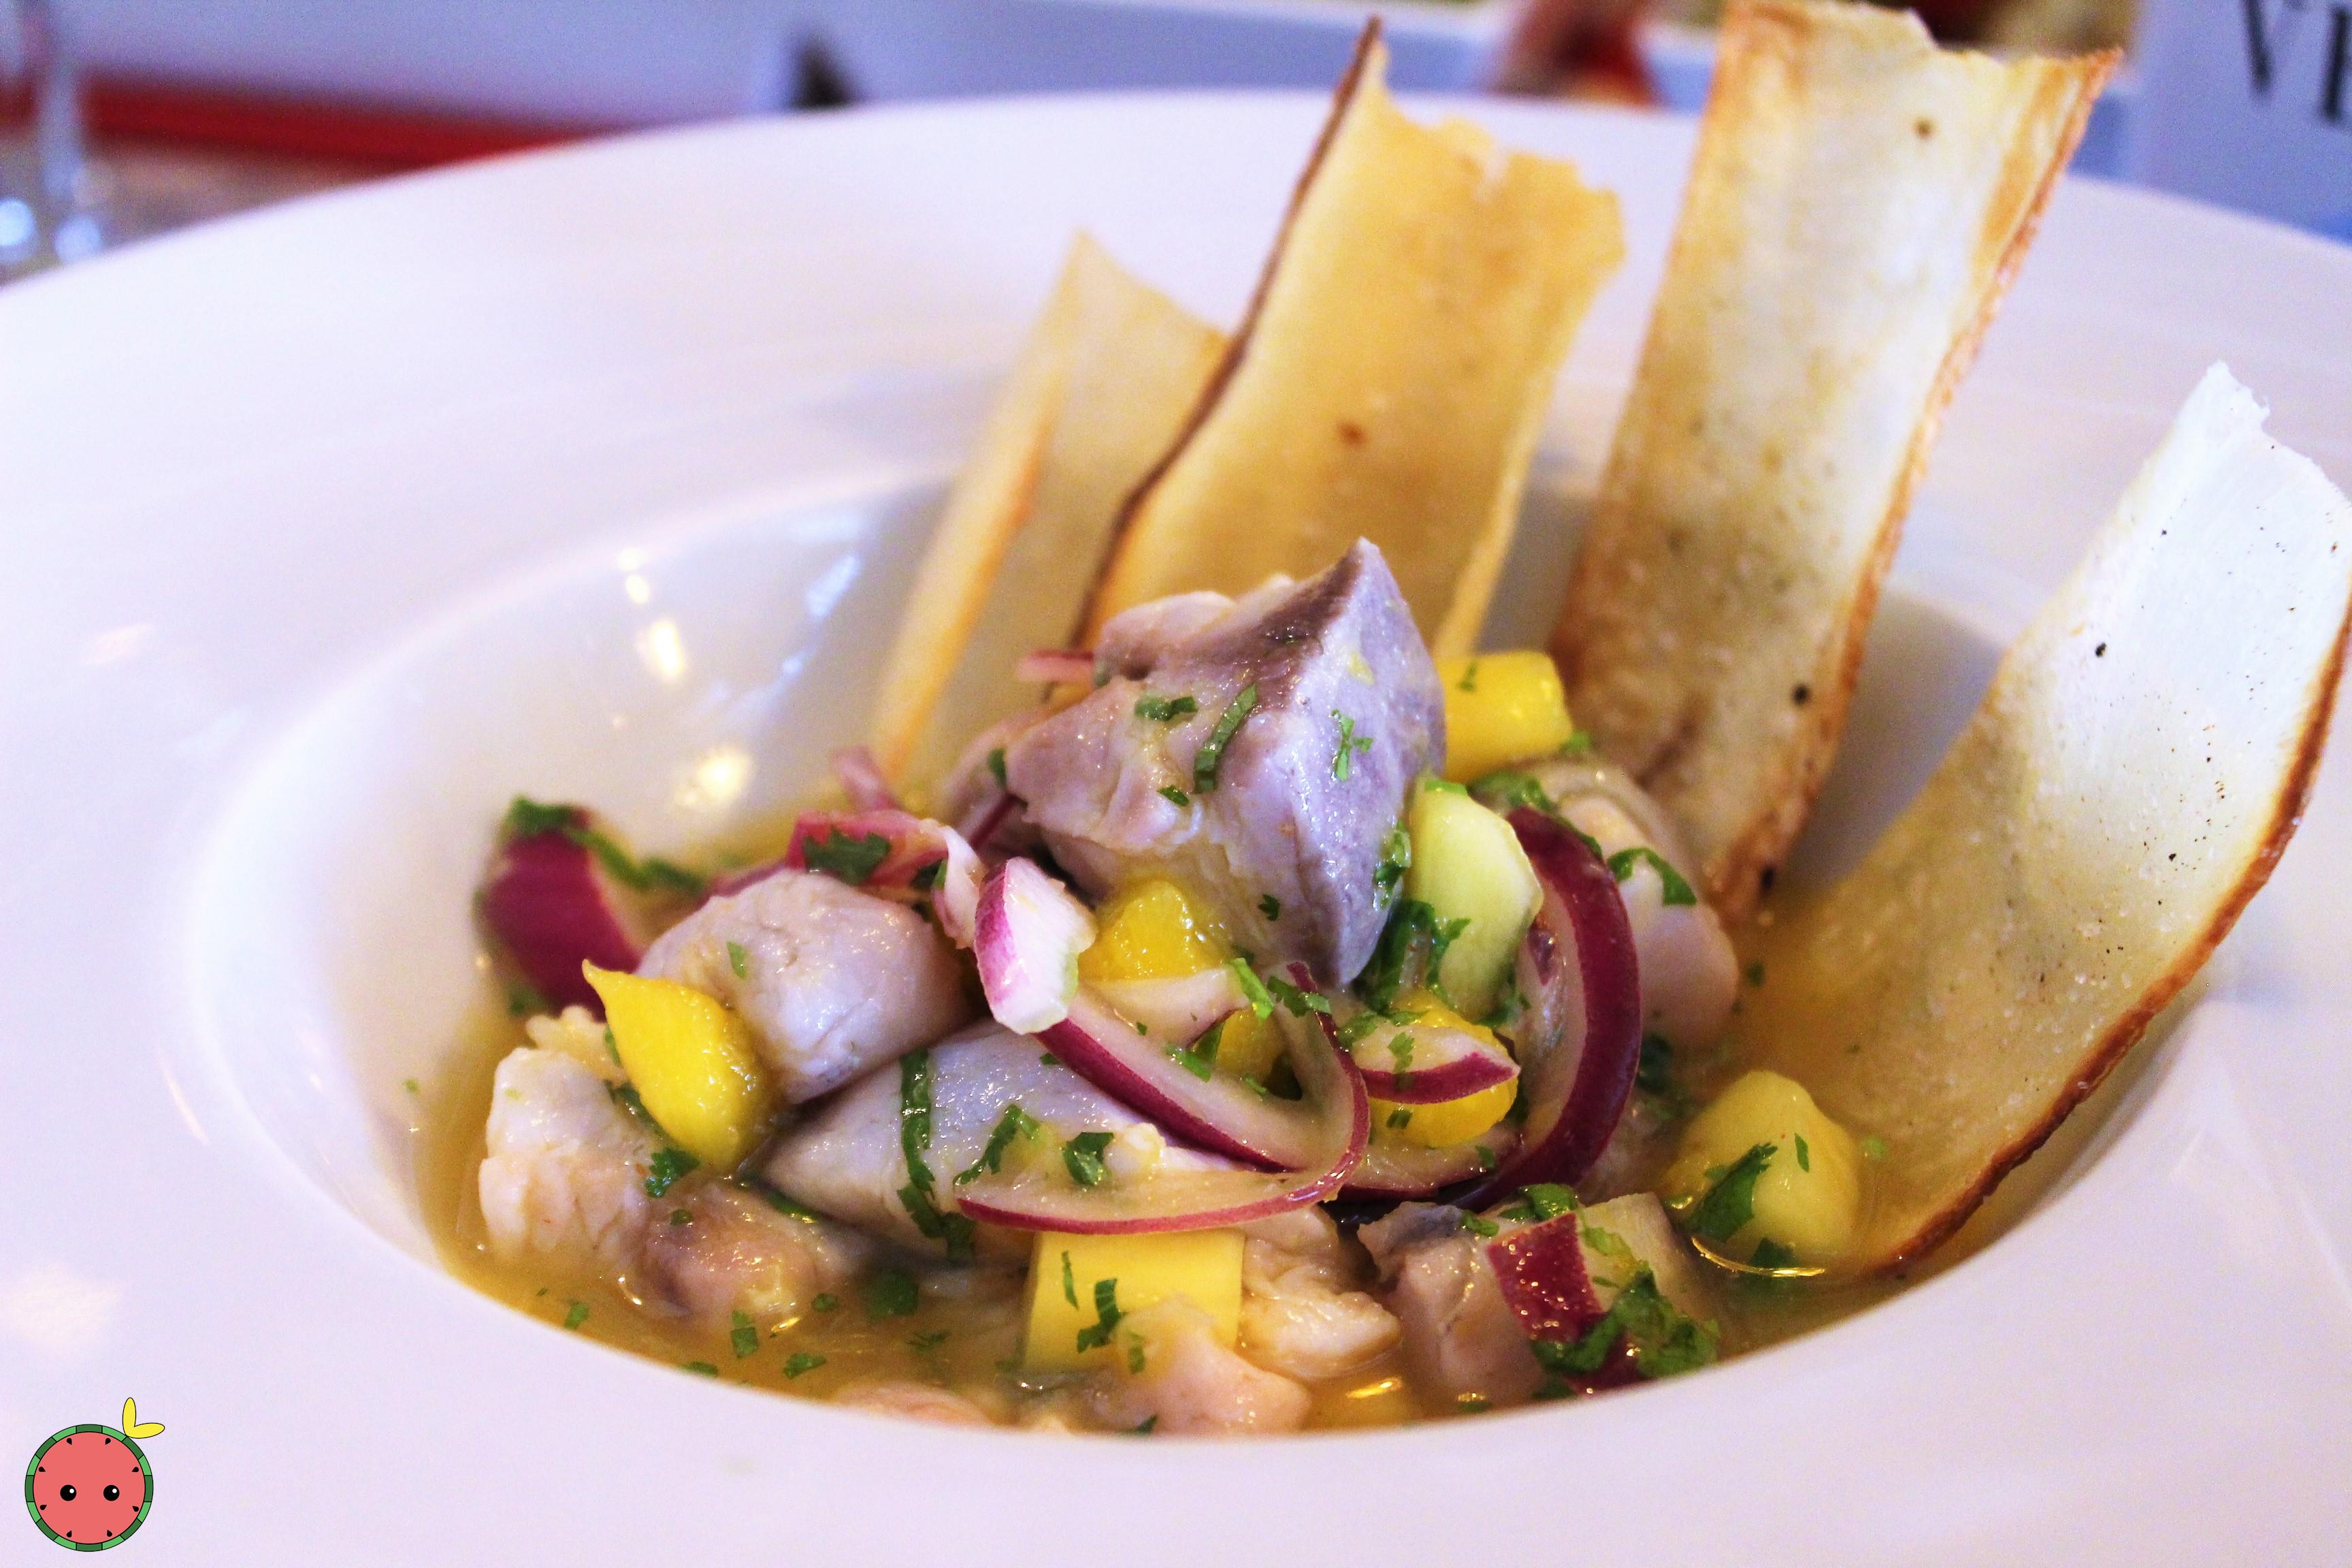 Our special ceviche with yucca chips